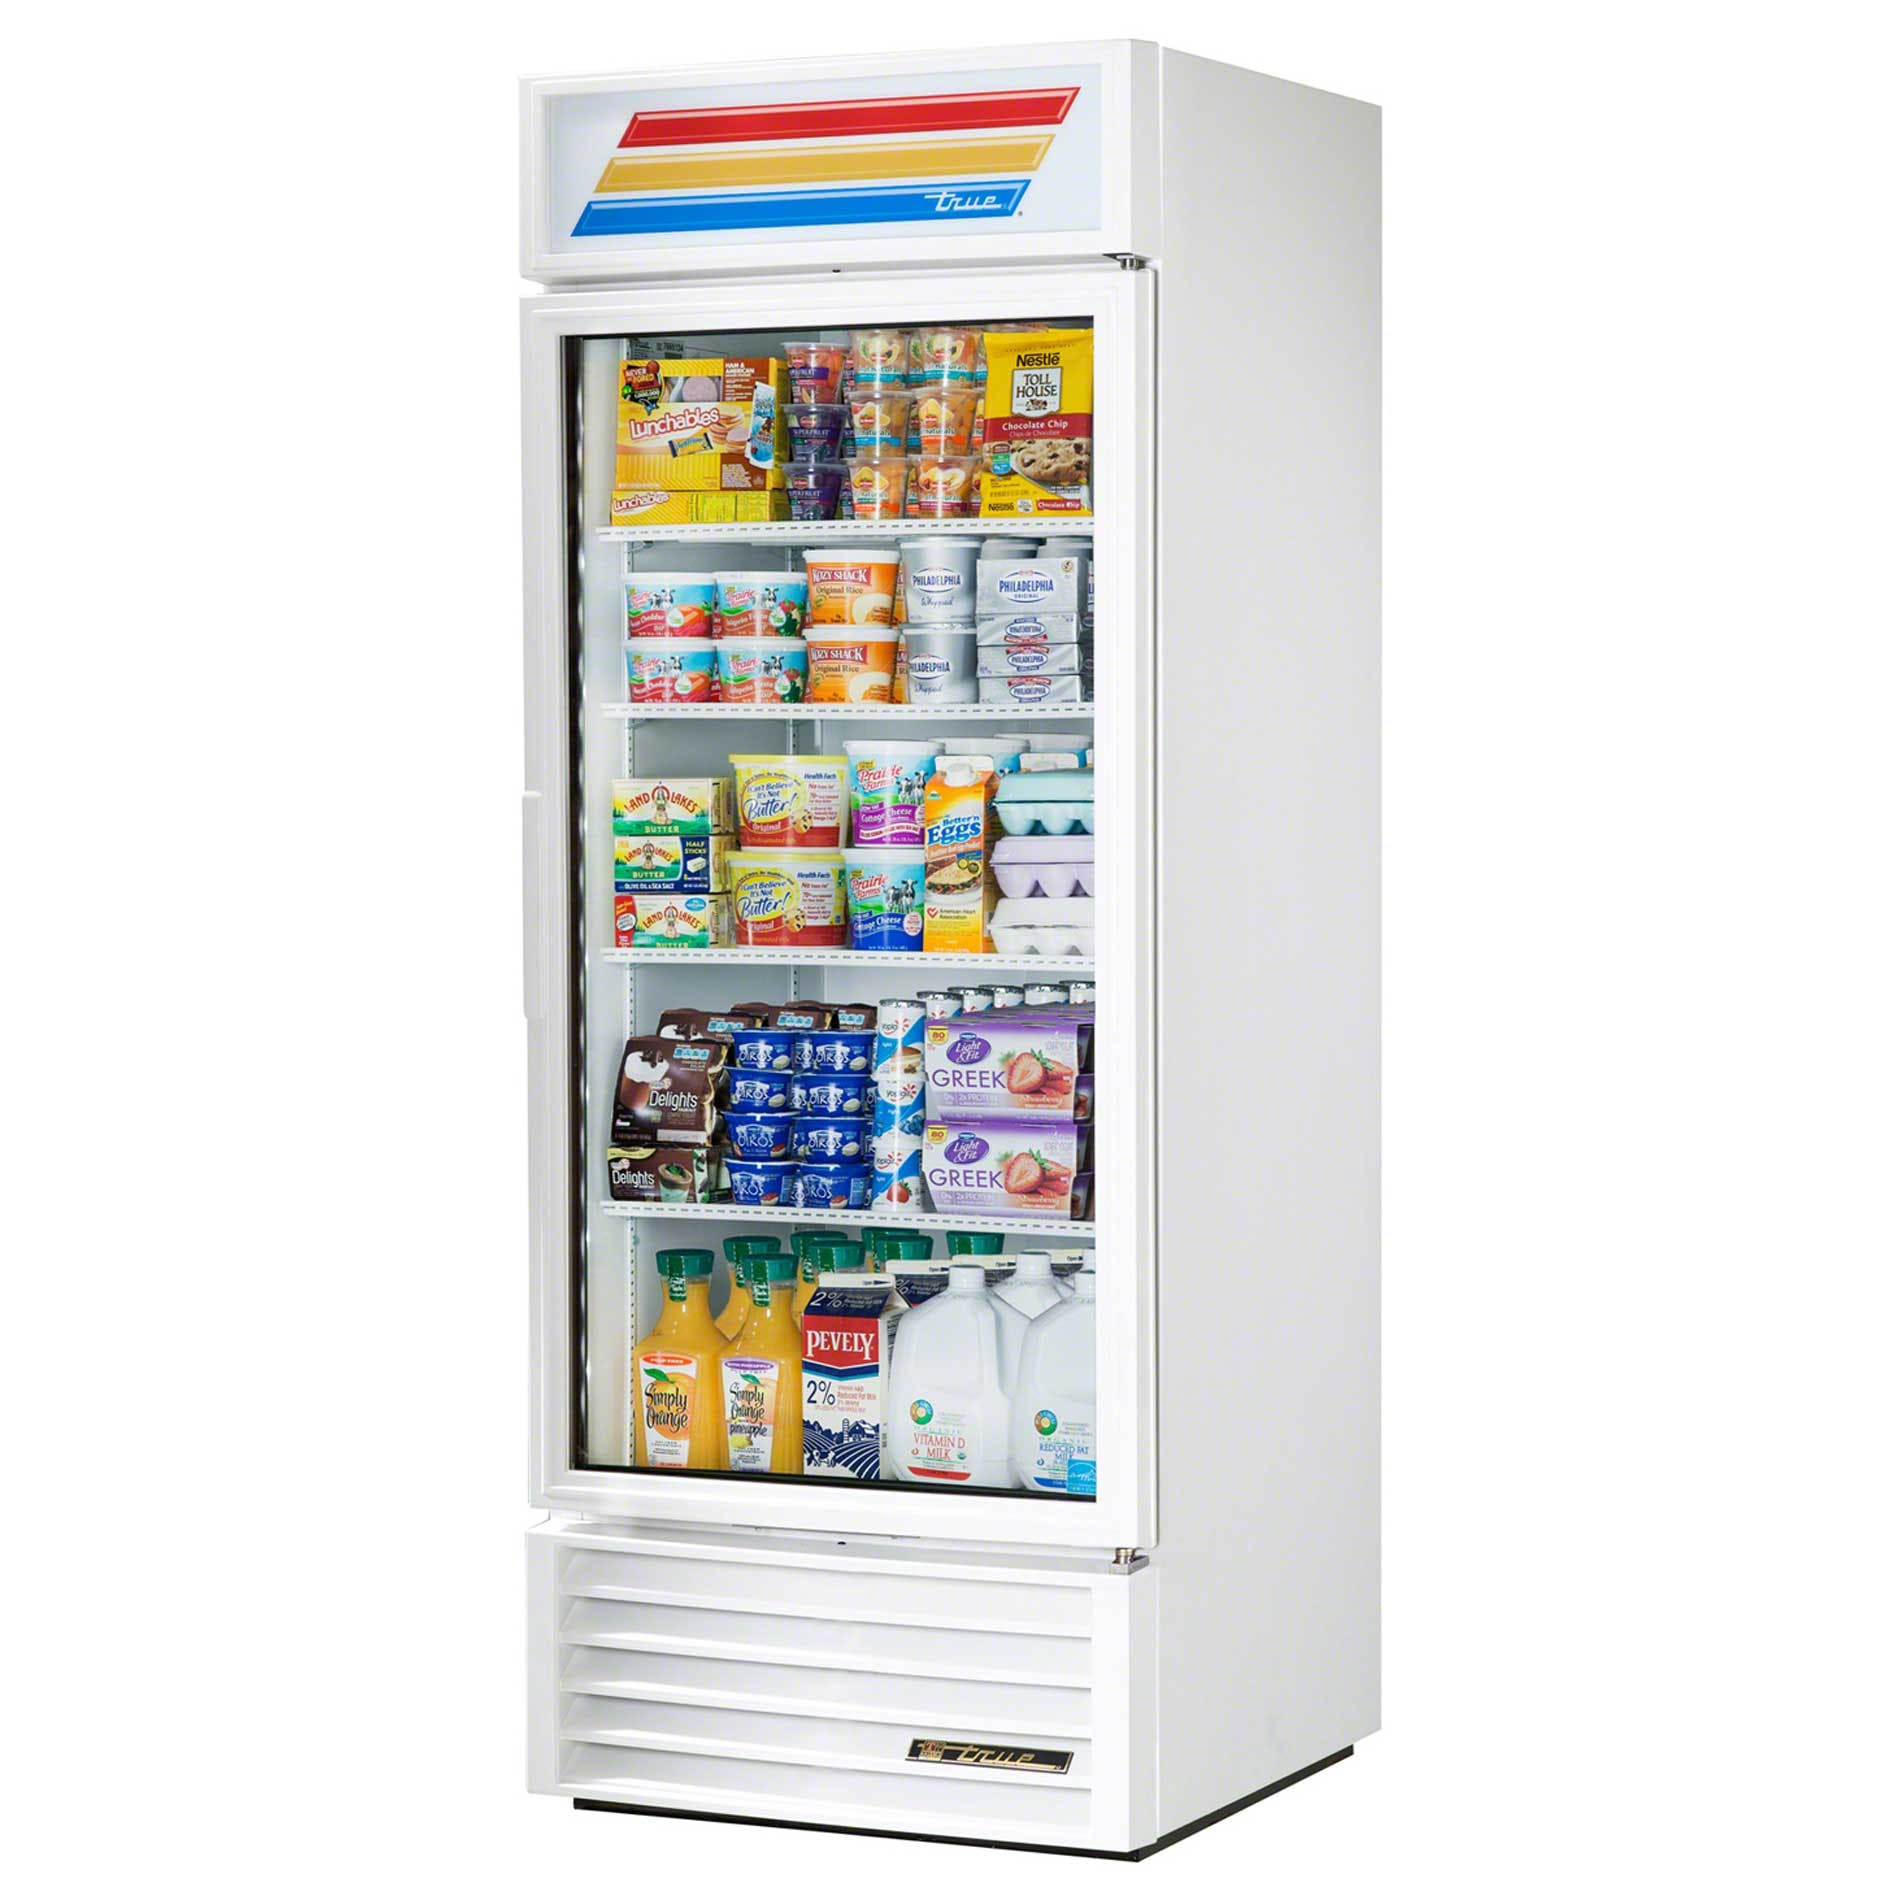 "True - GDM-26-LD WHT WHTTRM 30"" Swing Glass Door Merchandiser Refrigerator LED Commercial refrigerator sold by Food Service Warehouse"